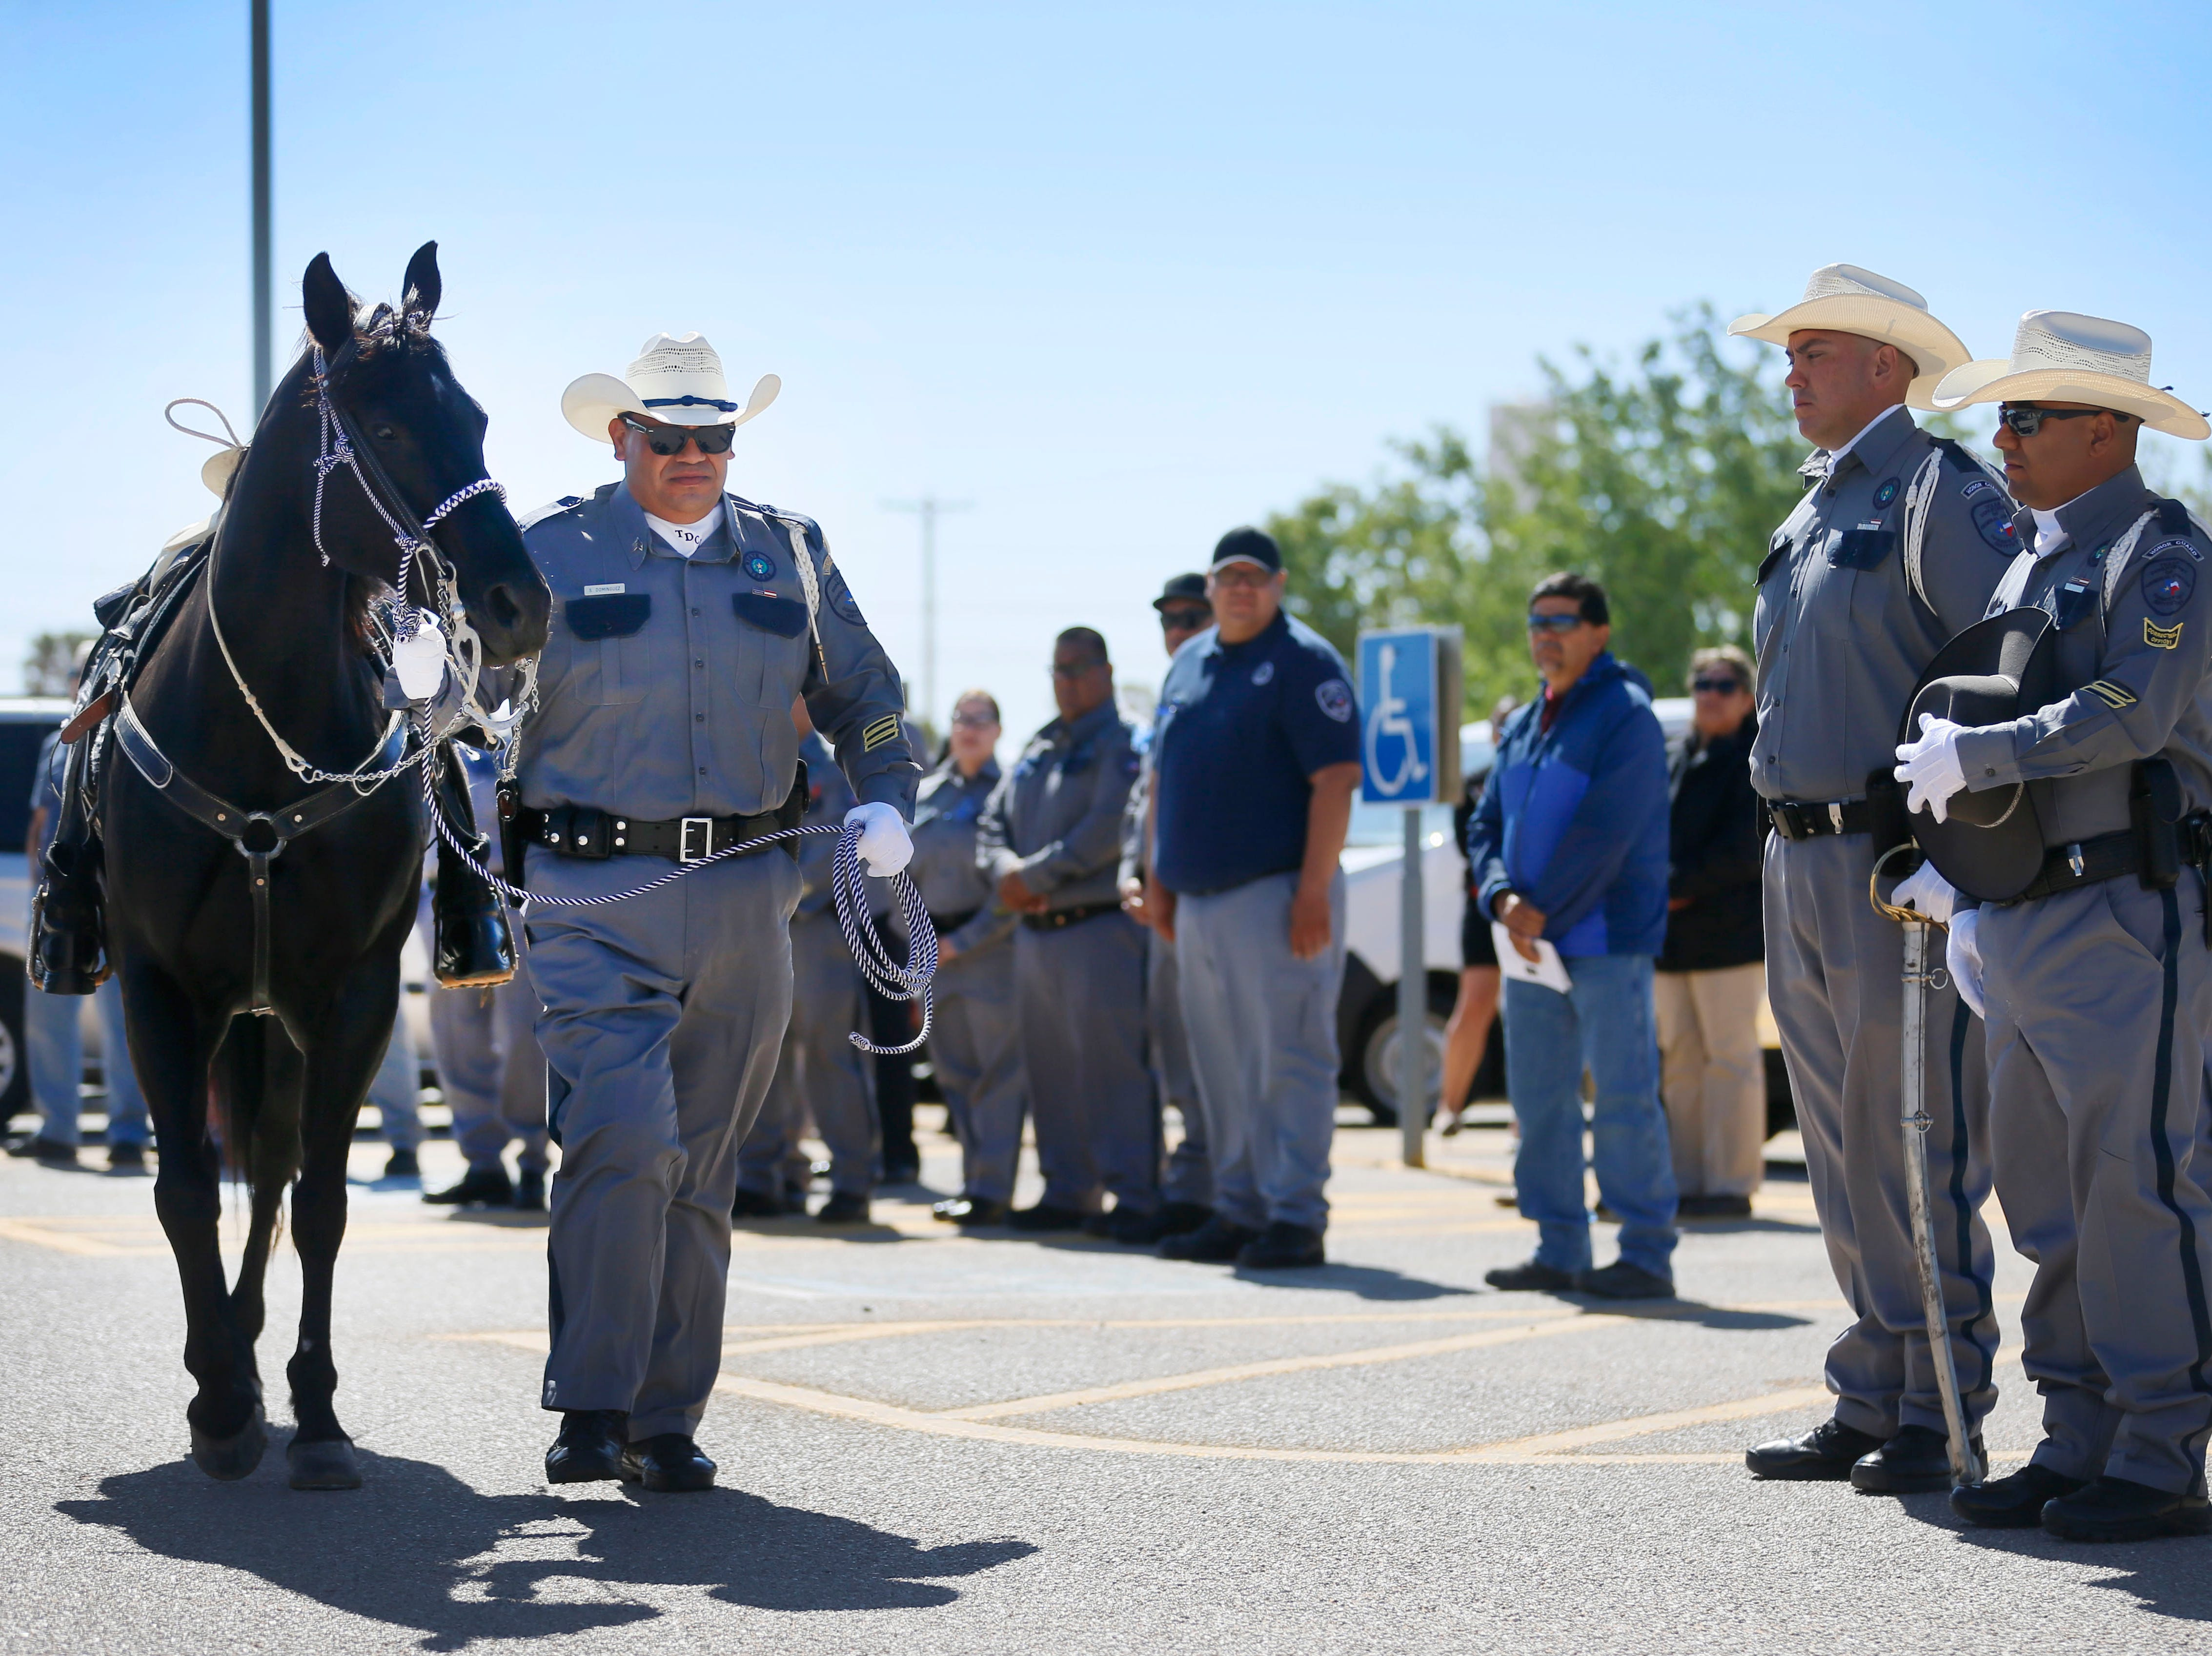 Sergeant Santiago Dominguez leads the riderless horse to honor the memory of fallen correctional officers Wednesday, May 8, at Rogelio Sanchez State Jail in El Paso.